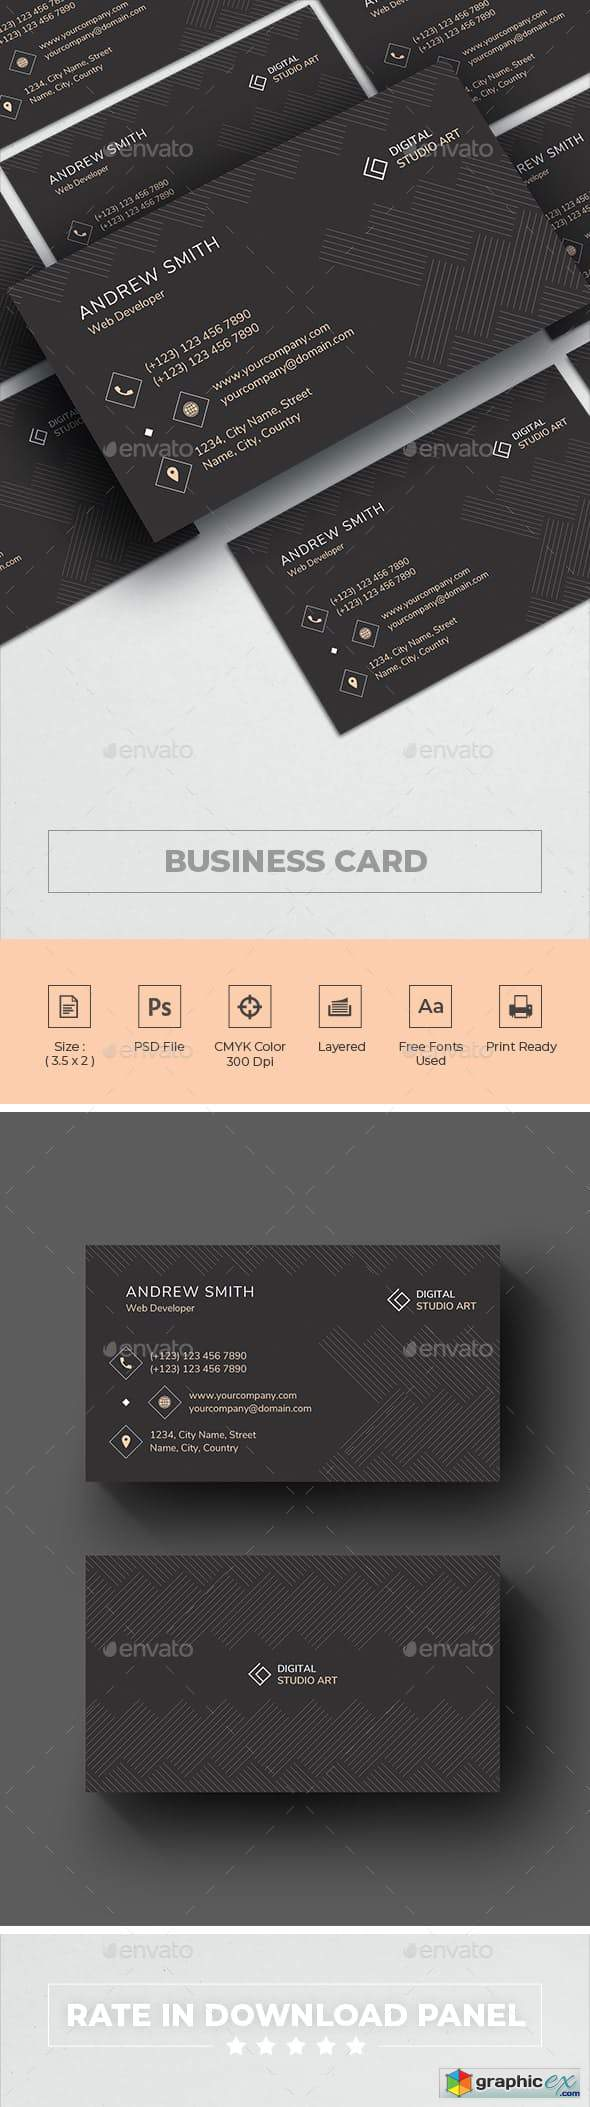 Business Card 23192684